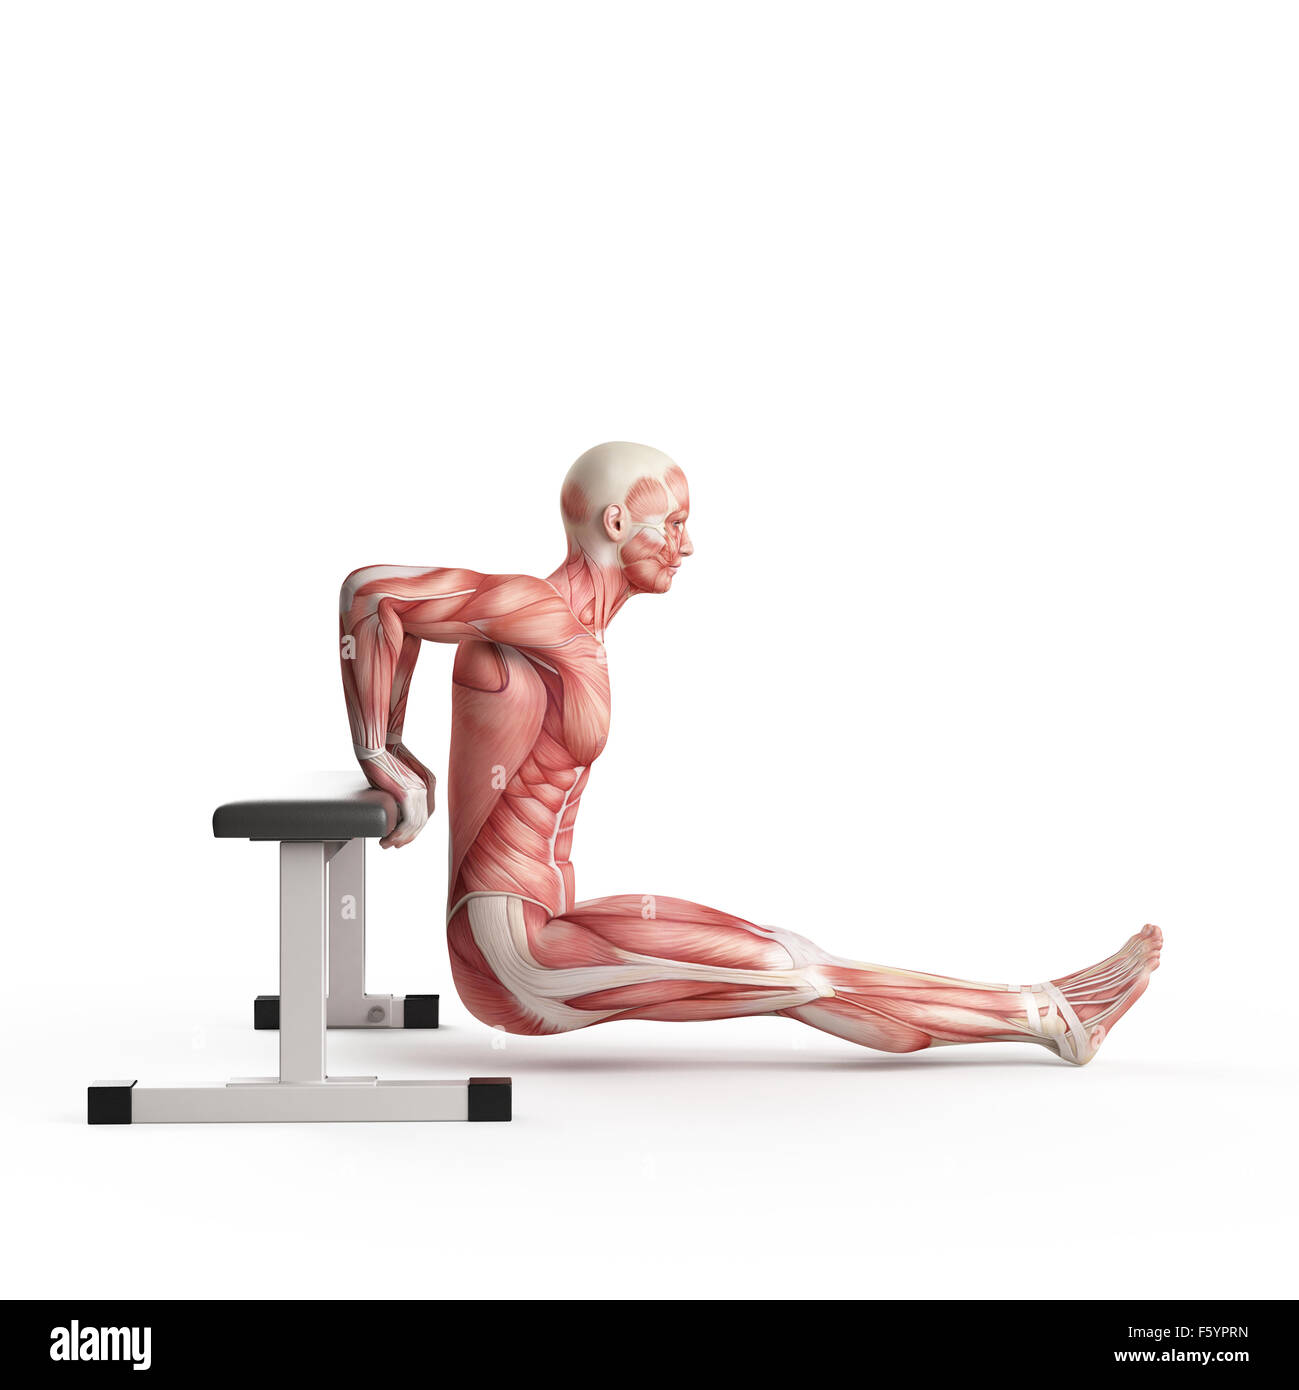 exercise illustration - bench dip - Stock Image